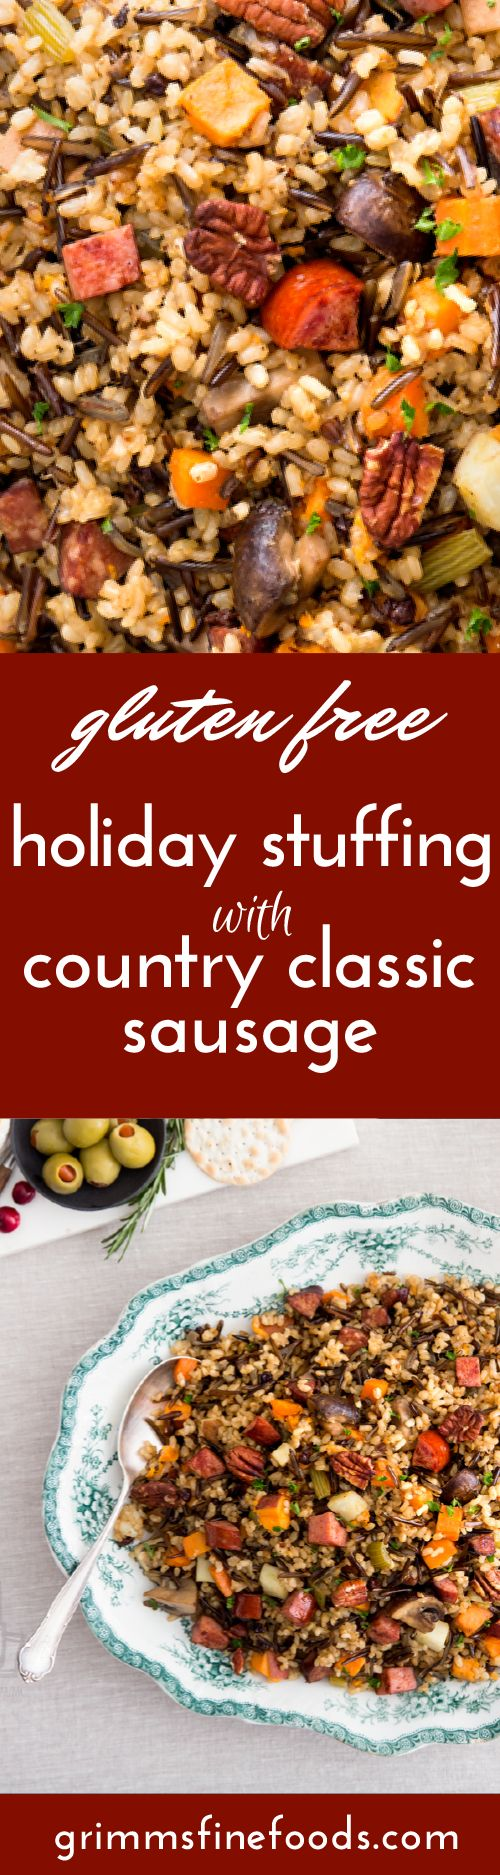 Our Holiday Stuffing with Country Classic Sausage plates beautifully with a rustic feel and all the warmth we love of holiday menu items.   This recipe is a simple one-pot dish that is entirely gluten-free.